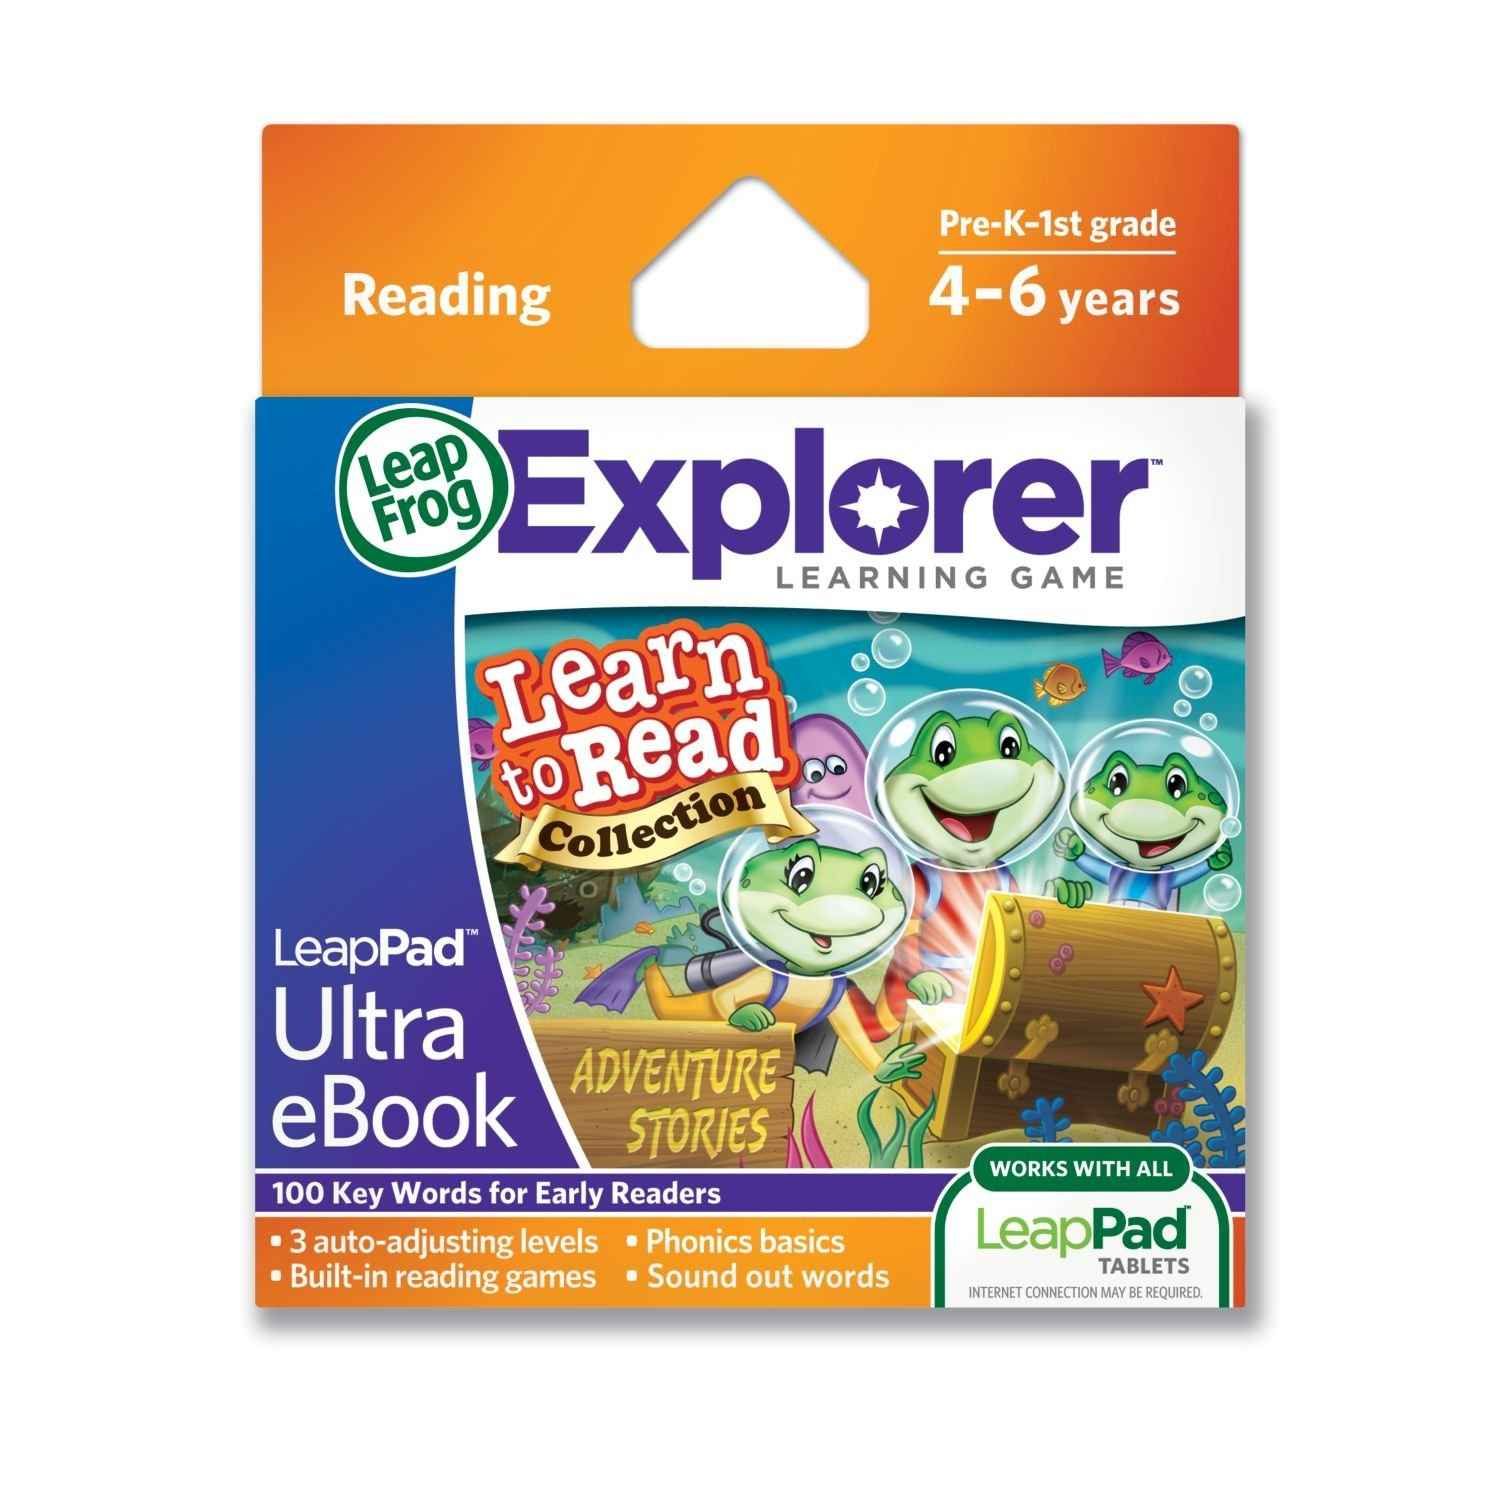 picture regarding Dr Scholls Coupons Printable referred to as Leapfrog leappad discount codes printable 2018 / Dr scholls discount codes